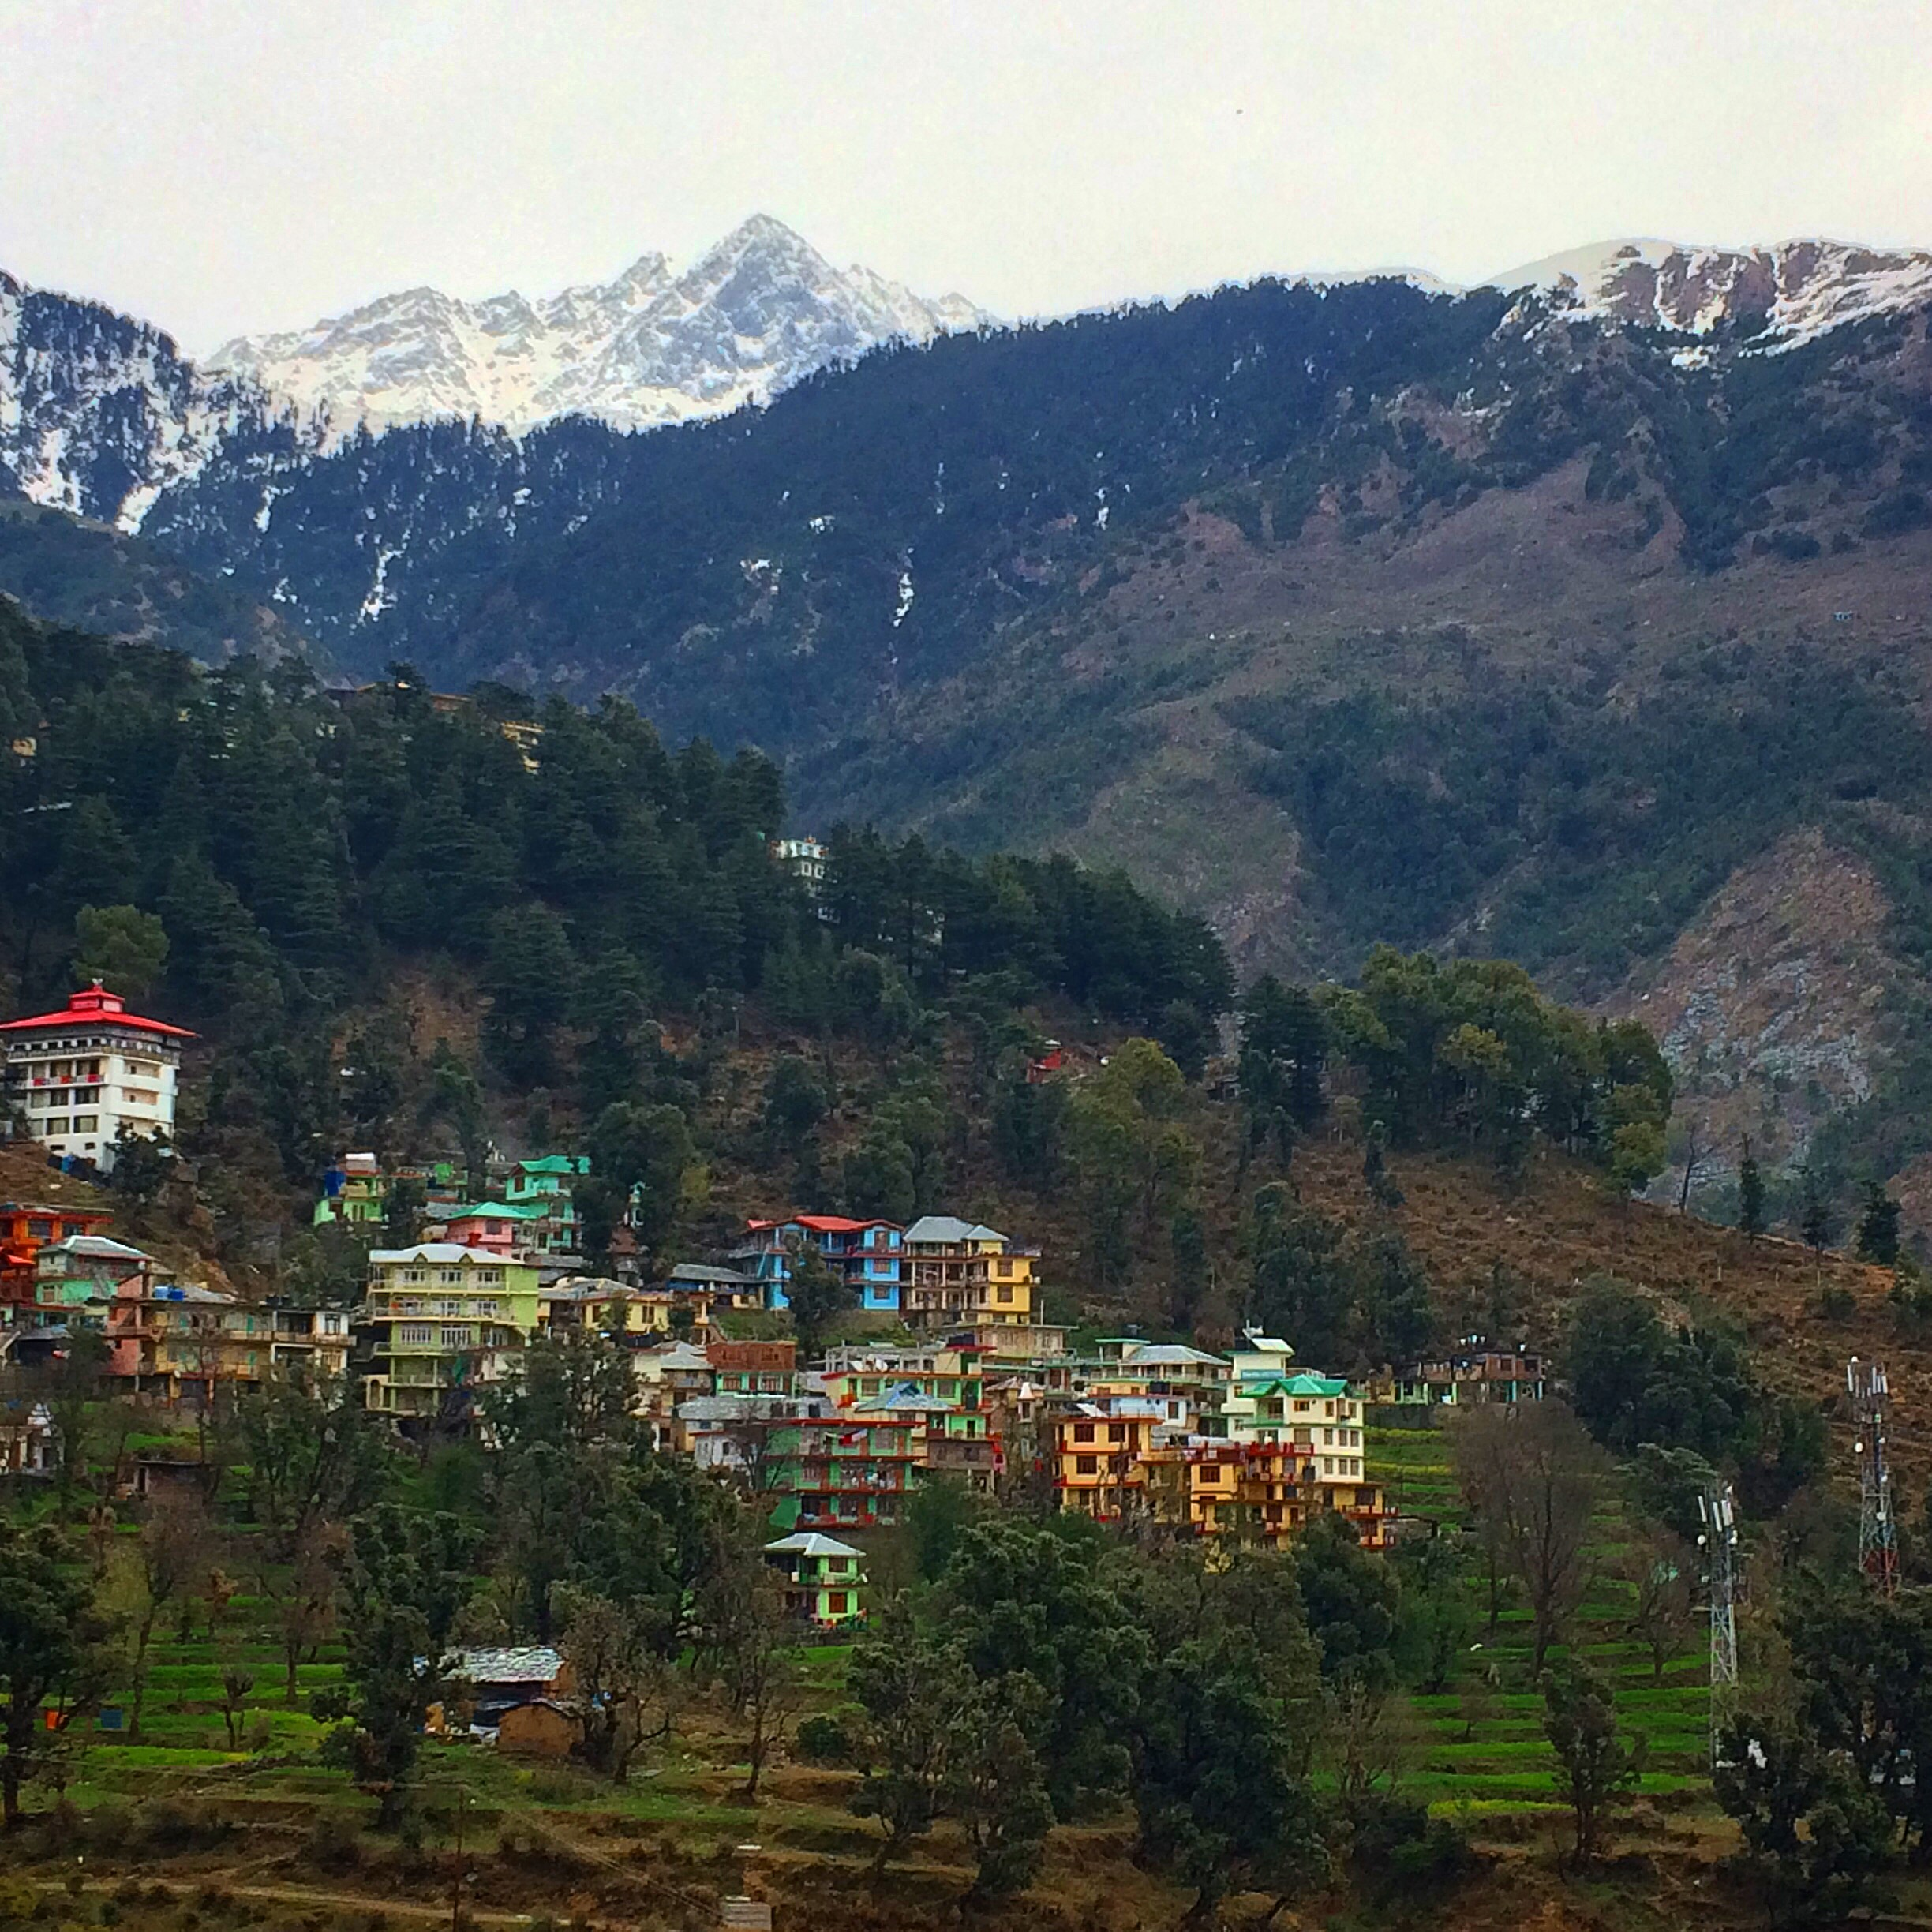 At the foot of the HIMALAYAS in Dharamsala, India.